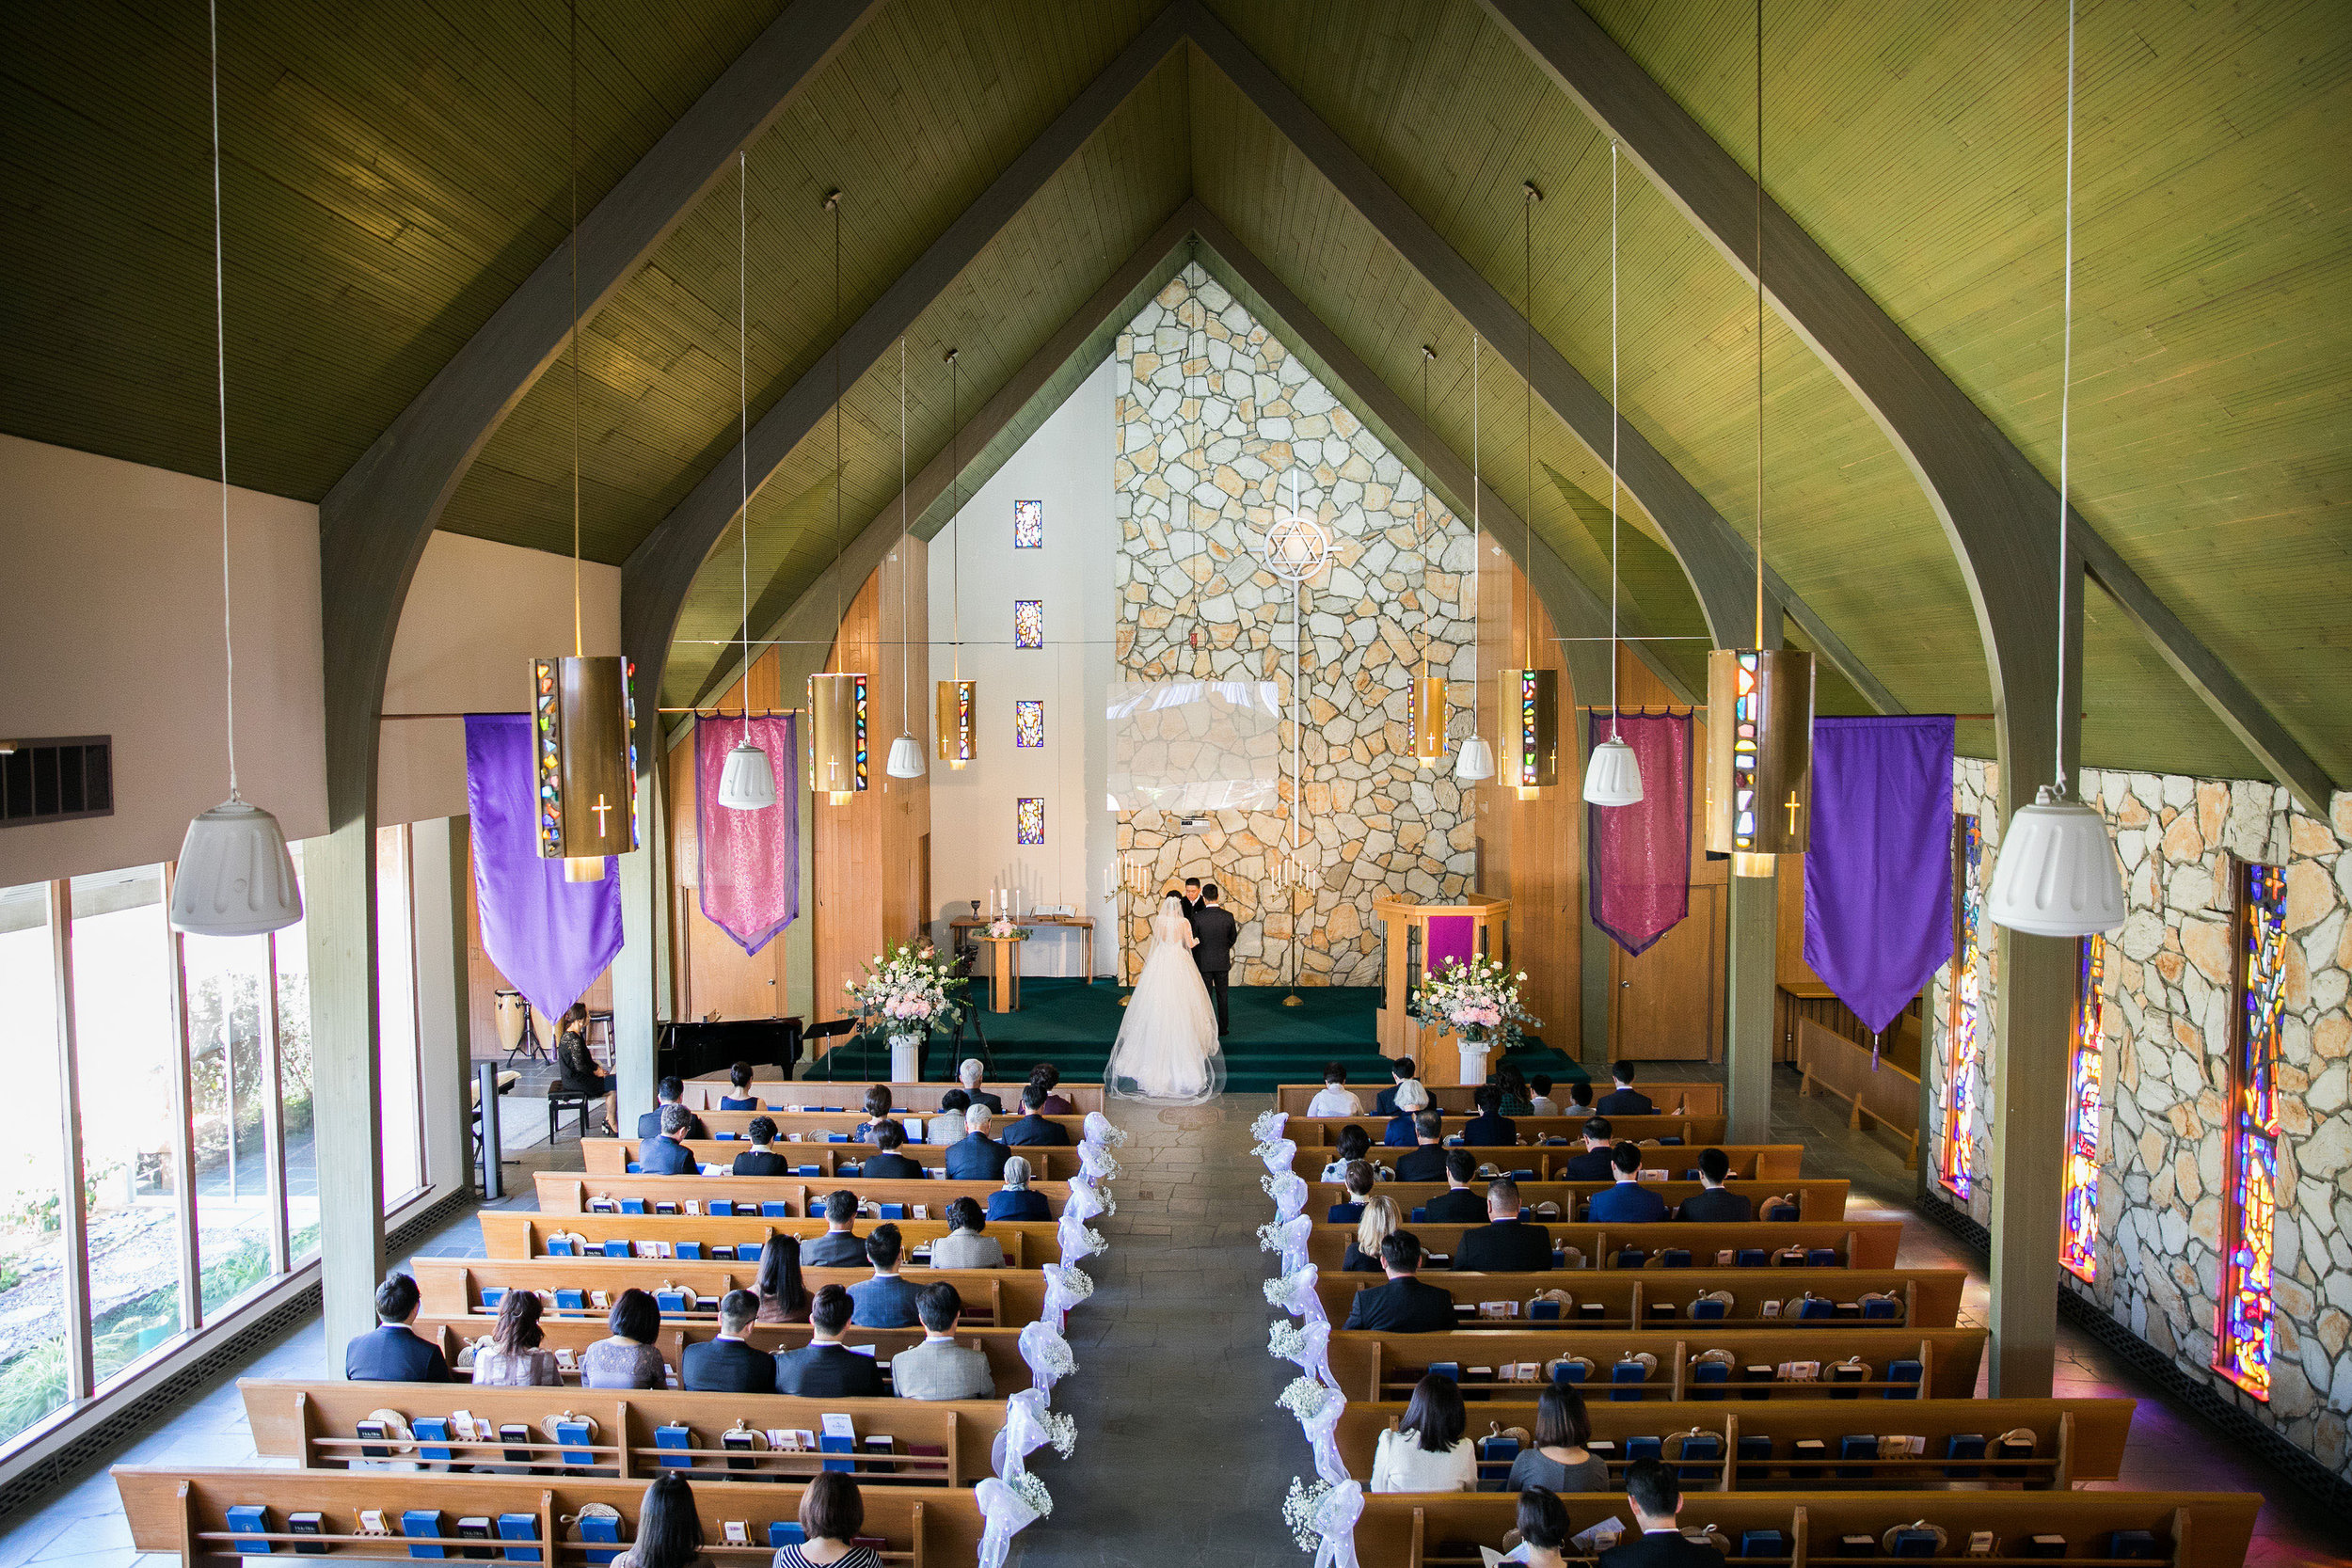 LarkLavender_Torrance_Church_Wedding.jpg